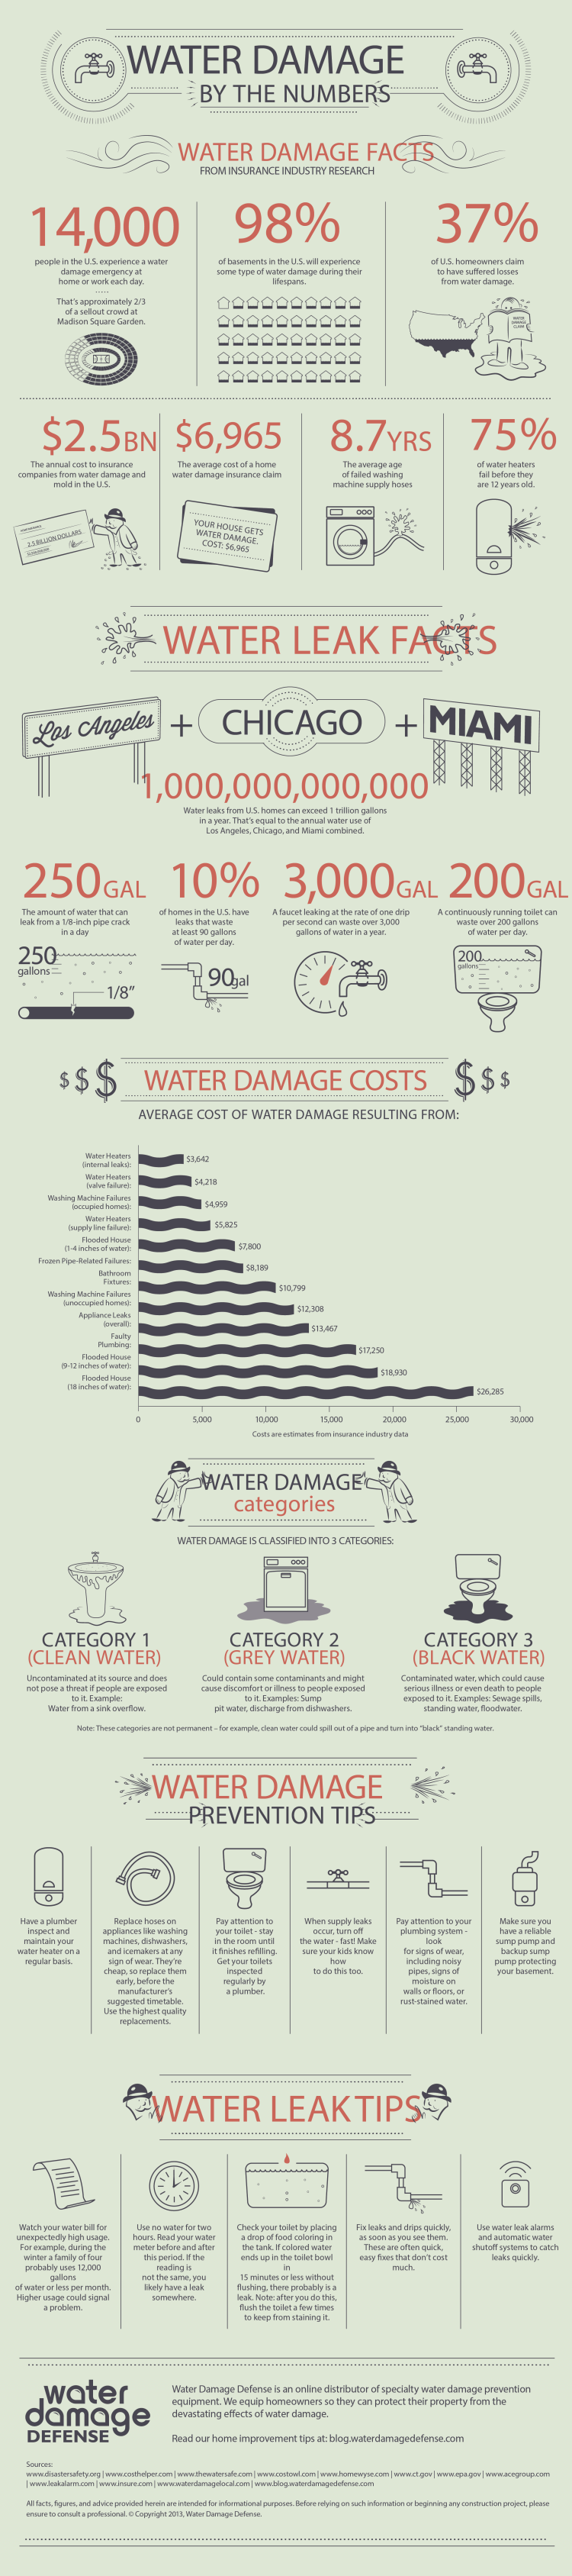 Water Damage By The Numbers Water Damage Insurance Industry